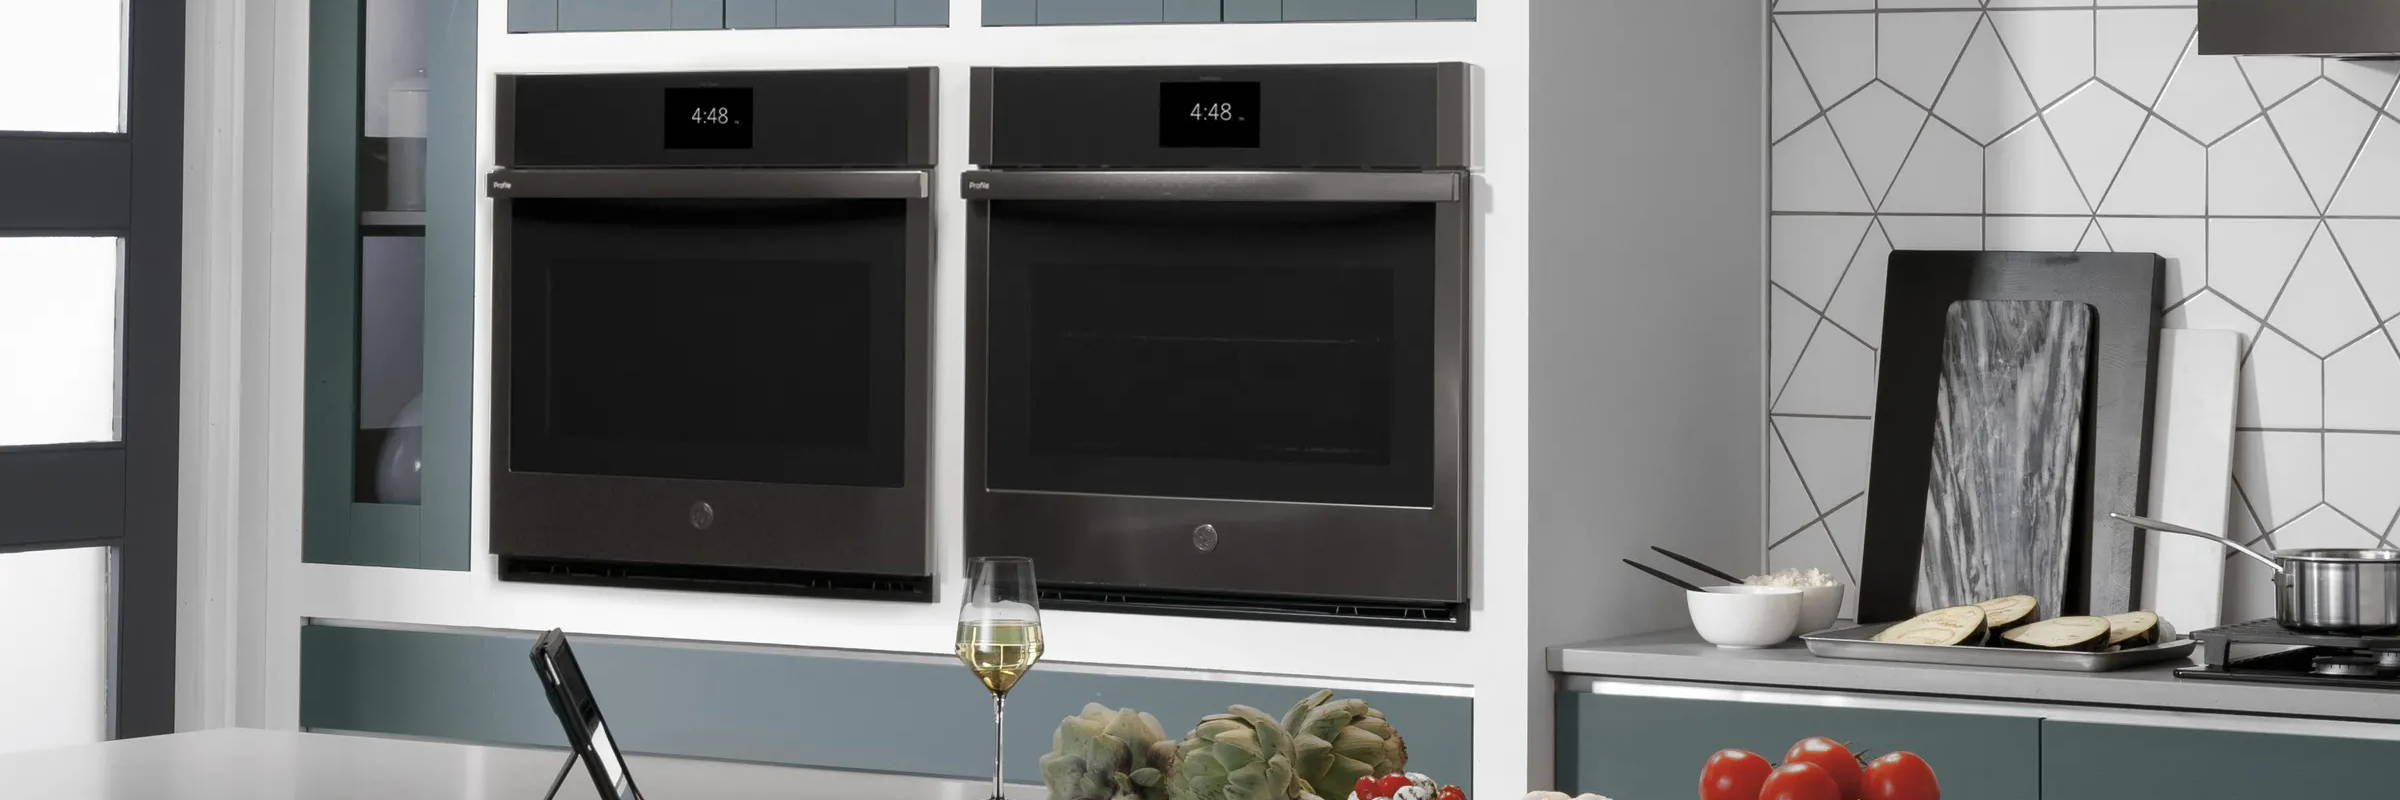 GE Profile Smart Wall Oven Kitchen